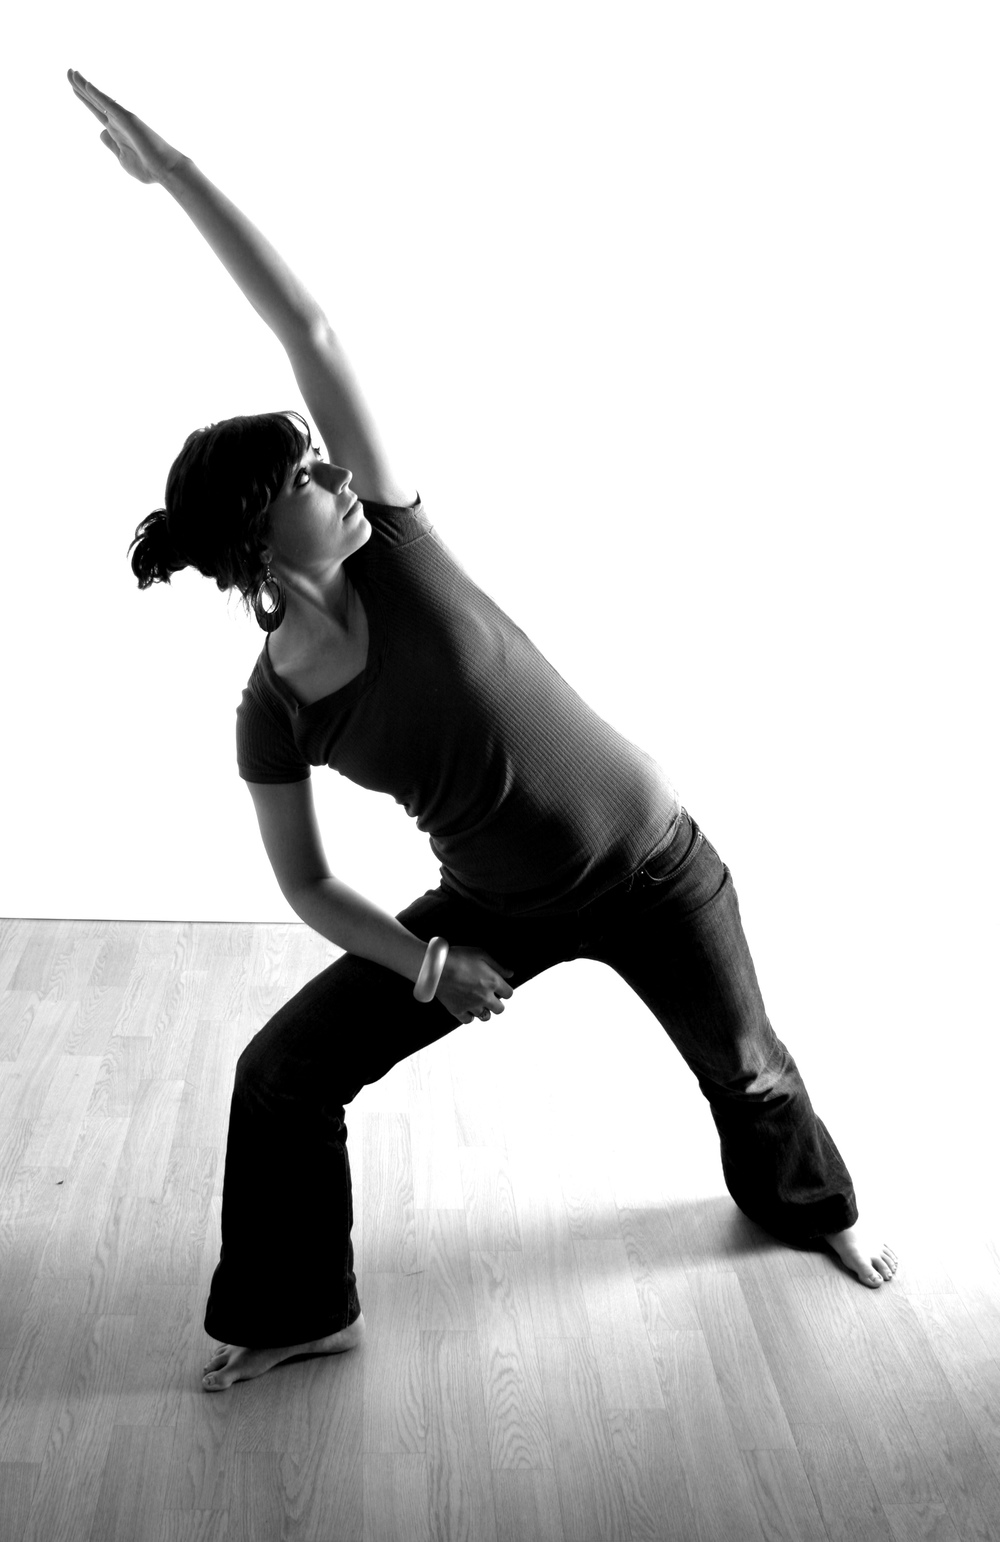 Me doing extended right angle pose in 2008! My bff, Kasey, of KaseyK Photo took this portrait.